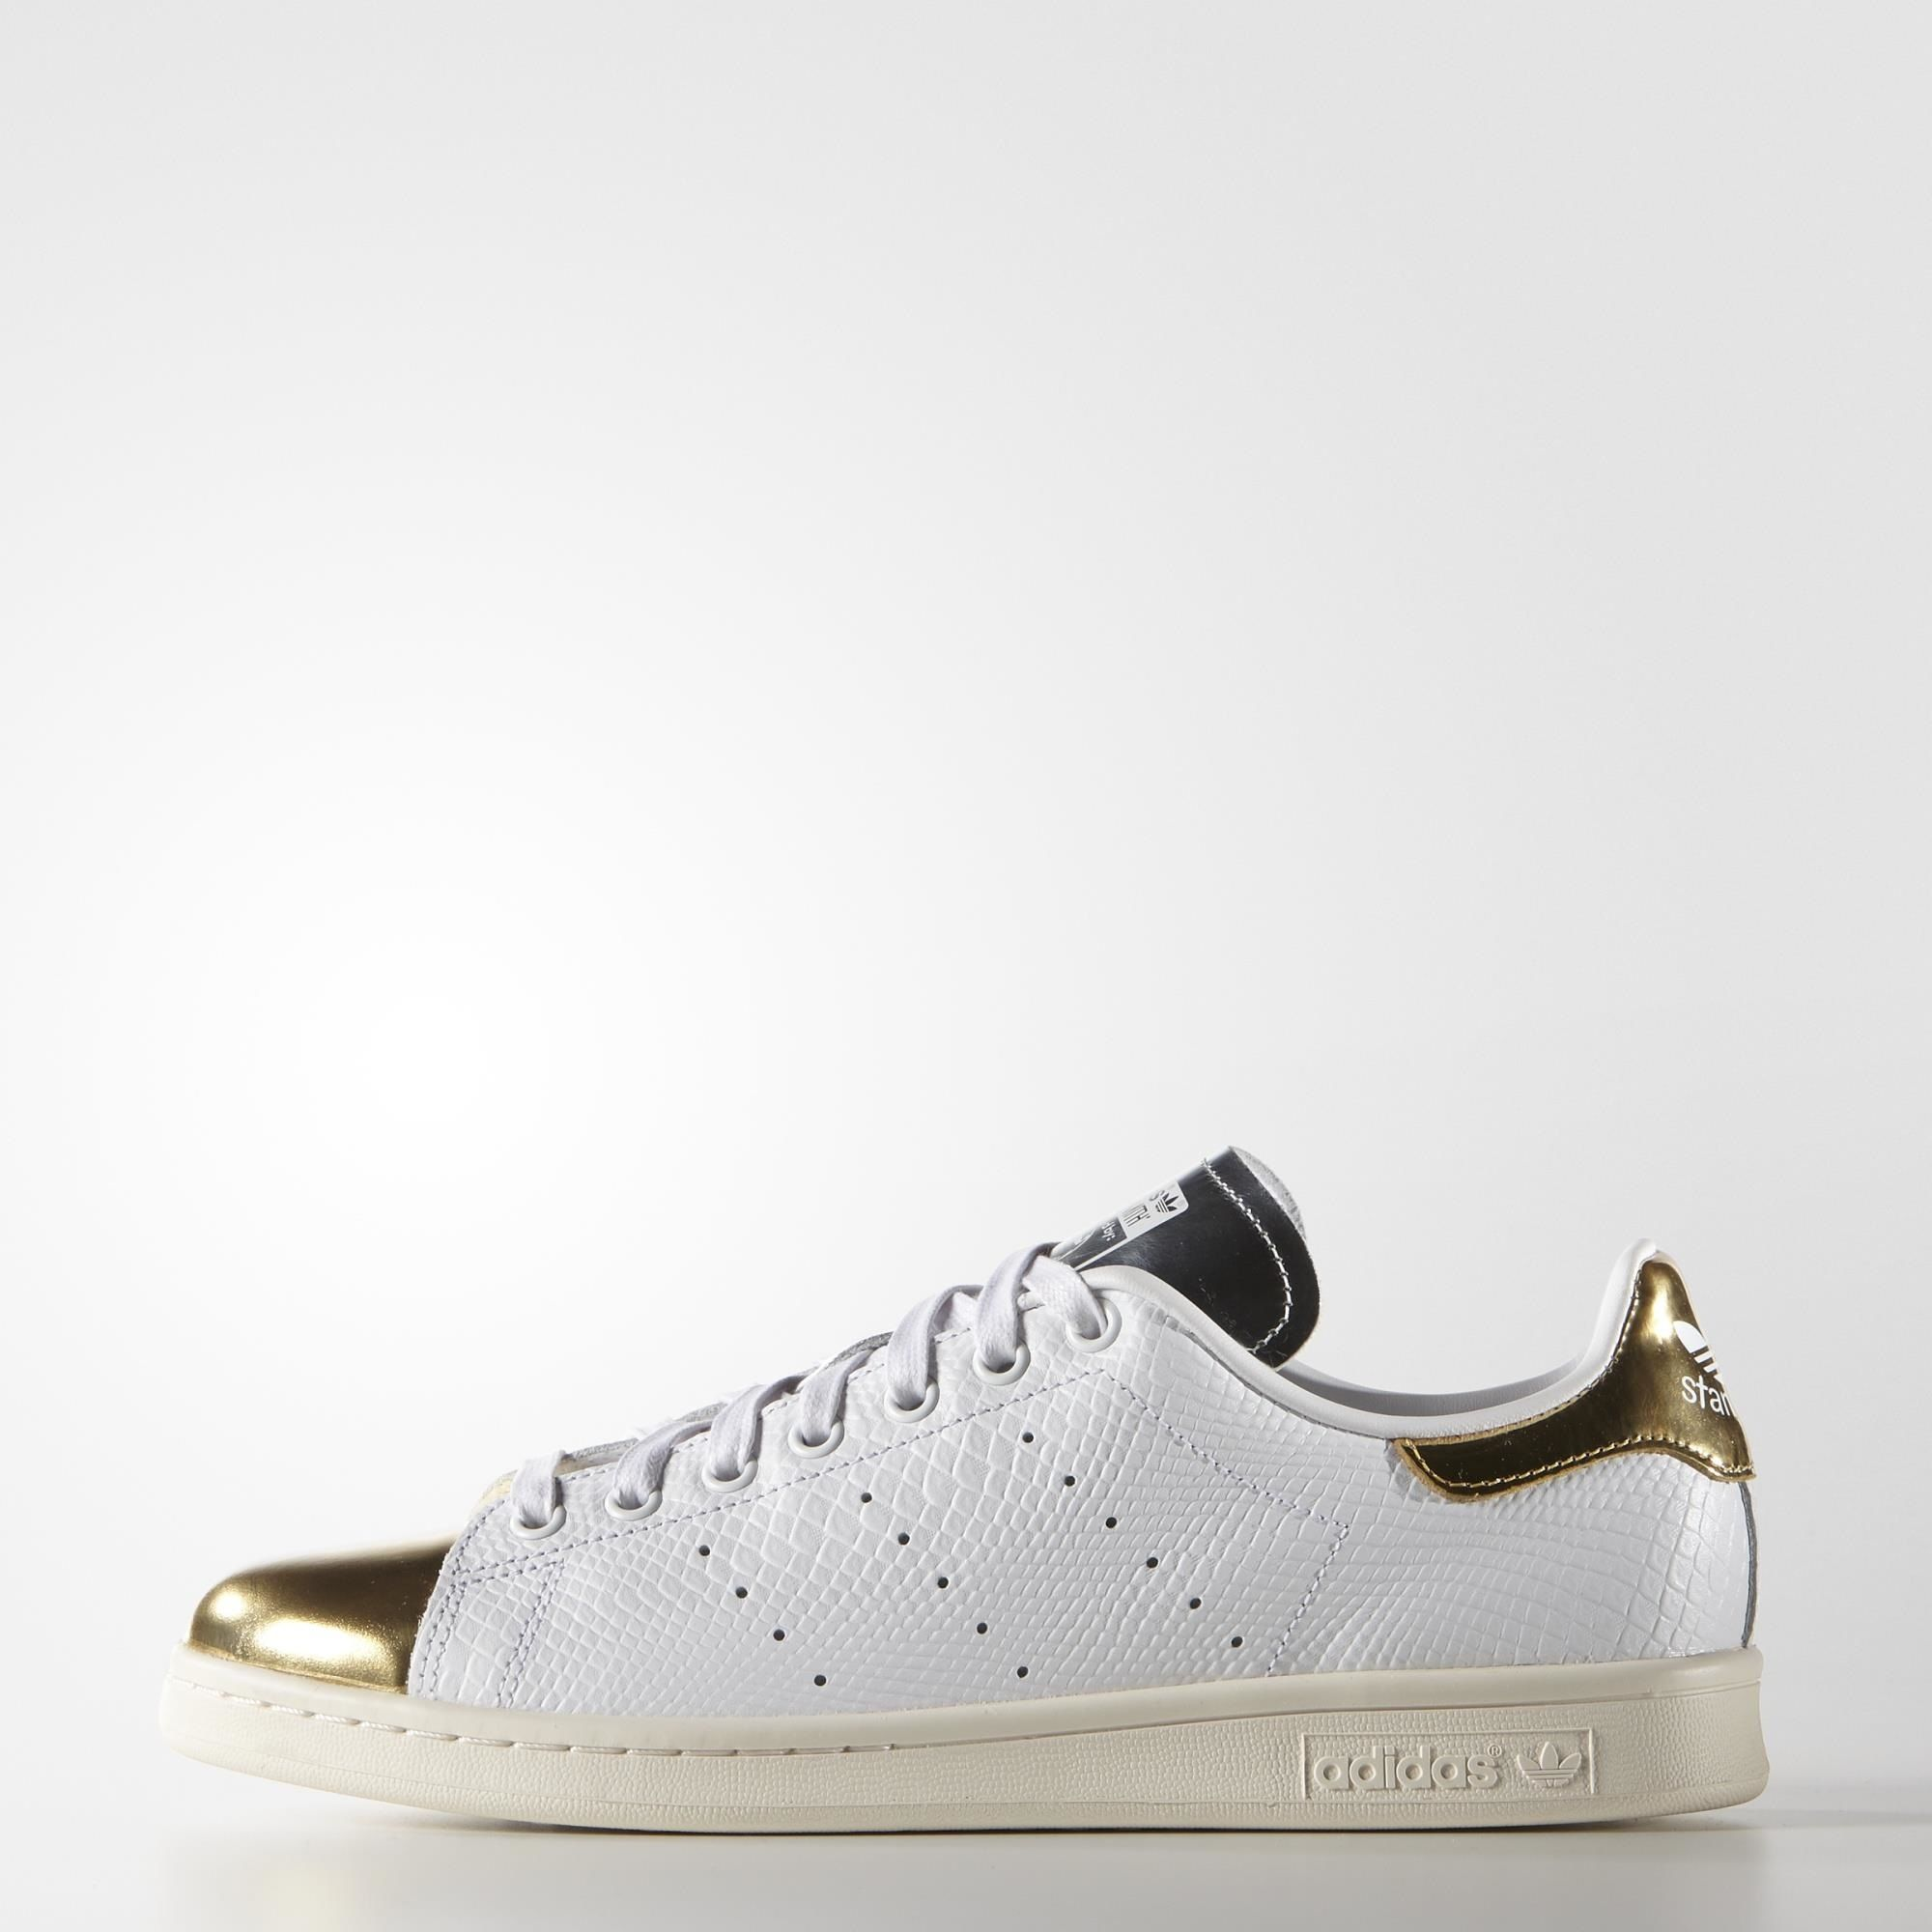 adidas chaussure stan smith shoes femme pinterest adidas et crocodile. Black Bedroom Furniture Sets. Home Design Ideas